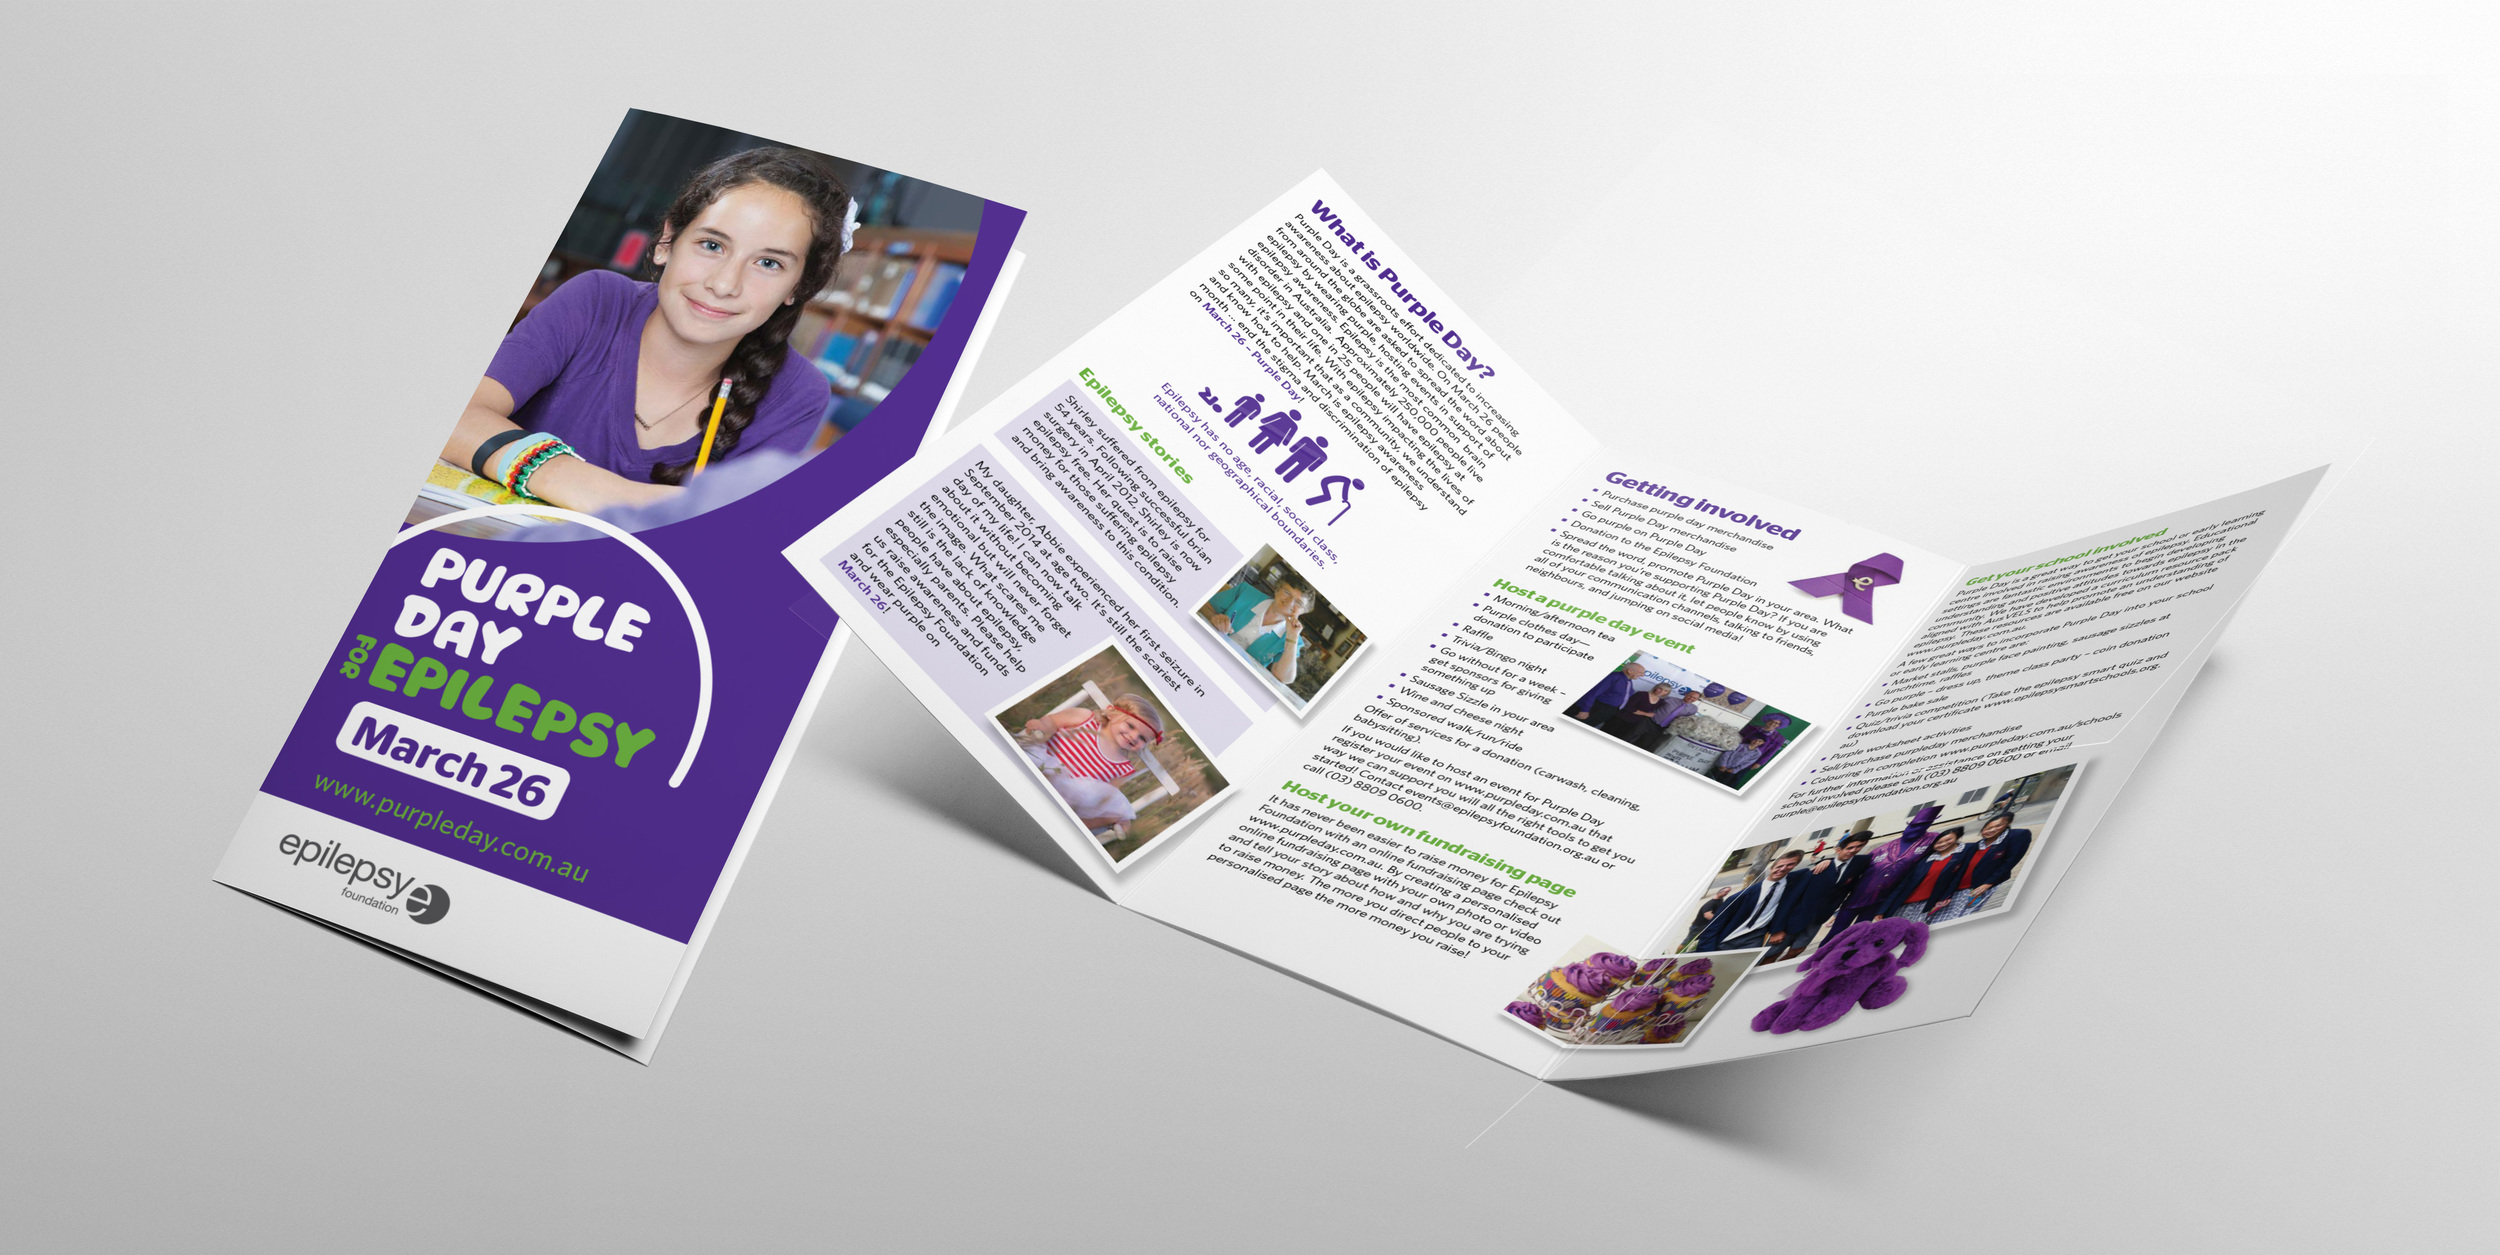 Epilepsy Foundation of Victoria Purple Day support brochure